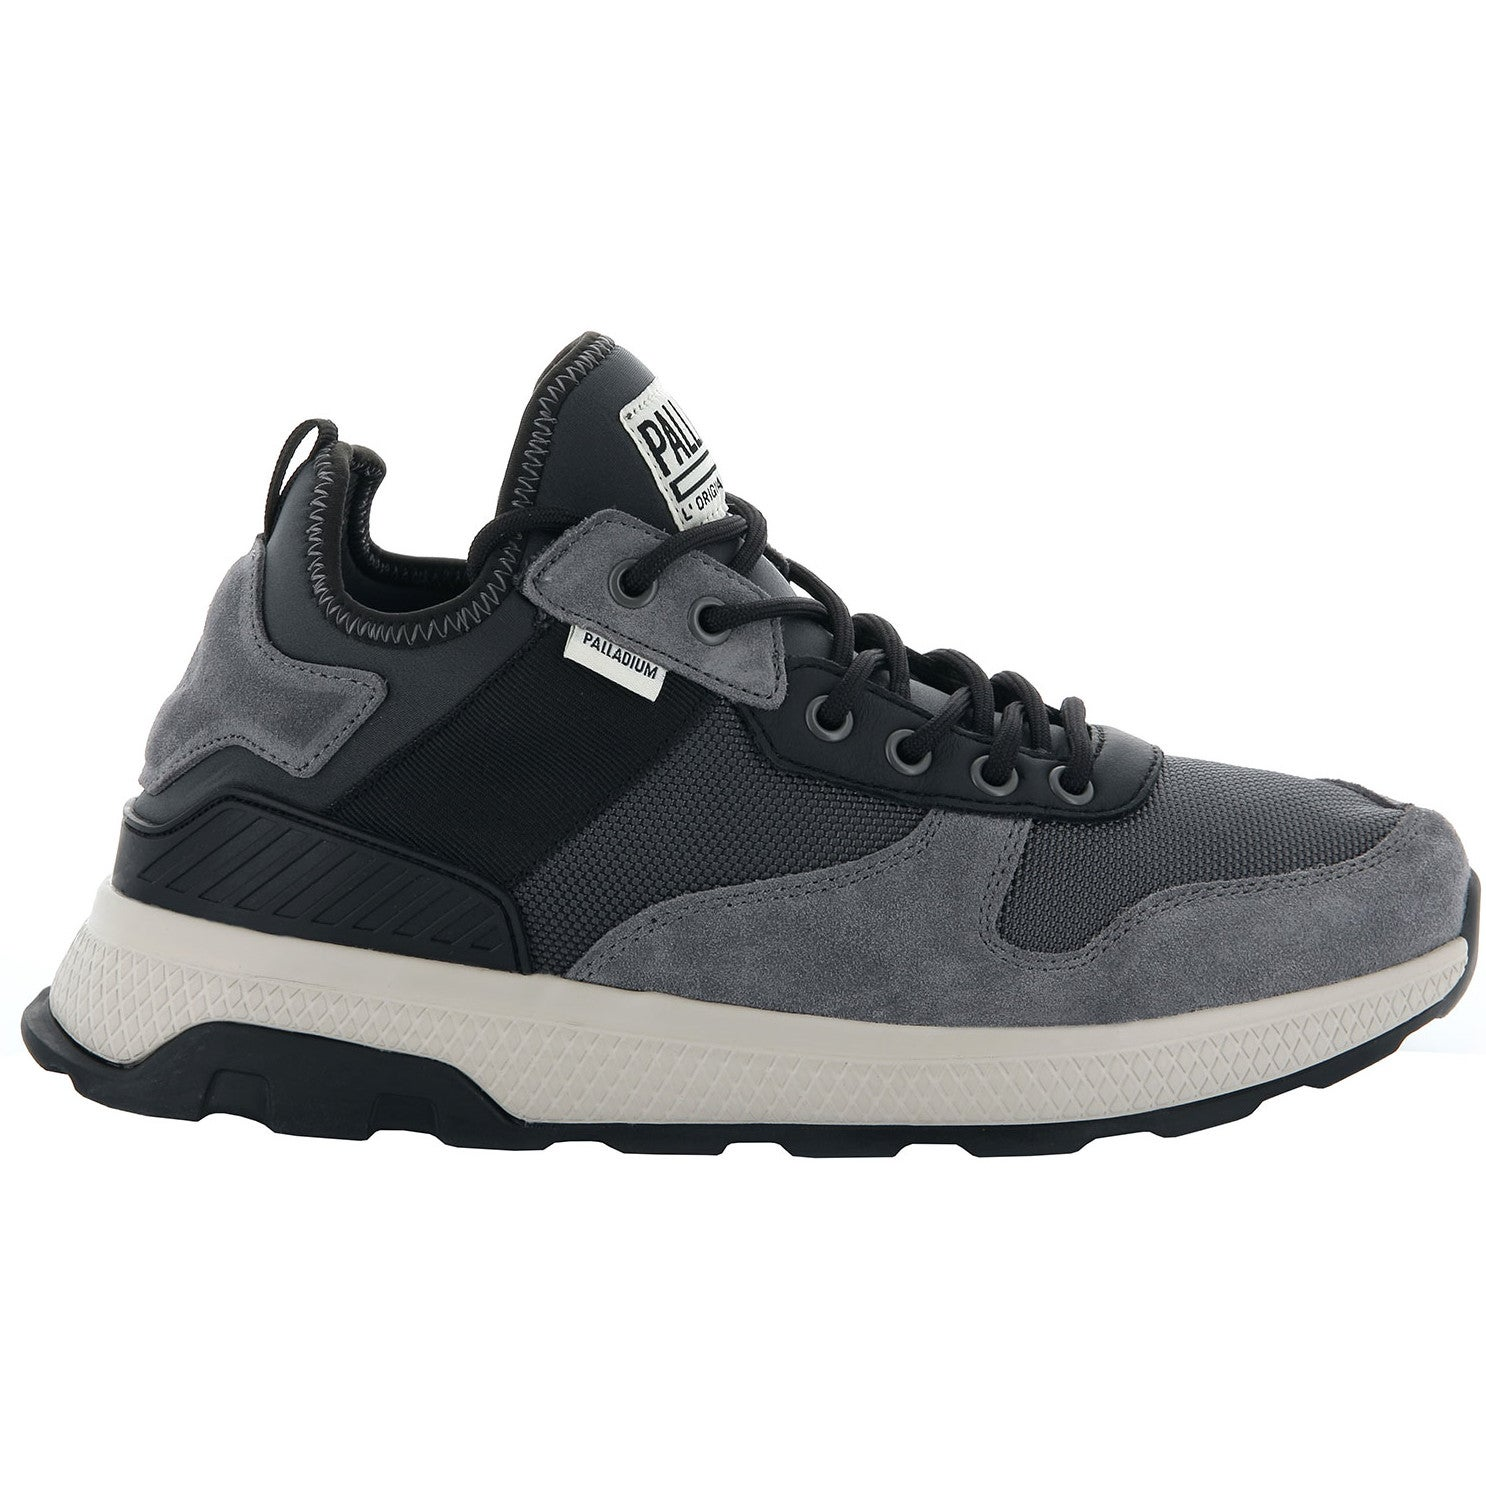 94b6189b539 Palladium AX Eon Army Runner Shoes available from Blackleaf